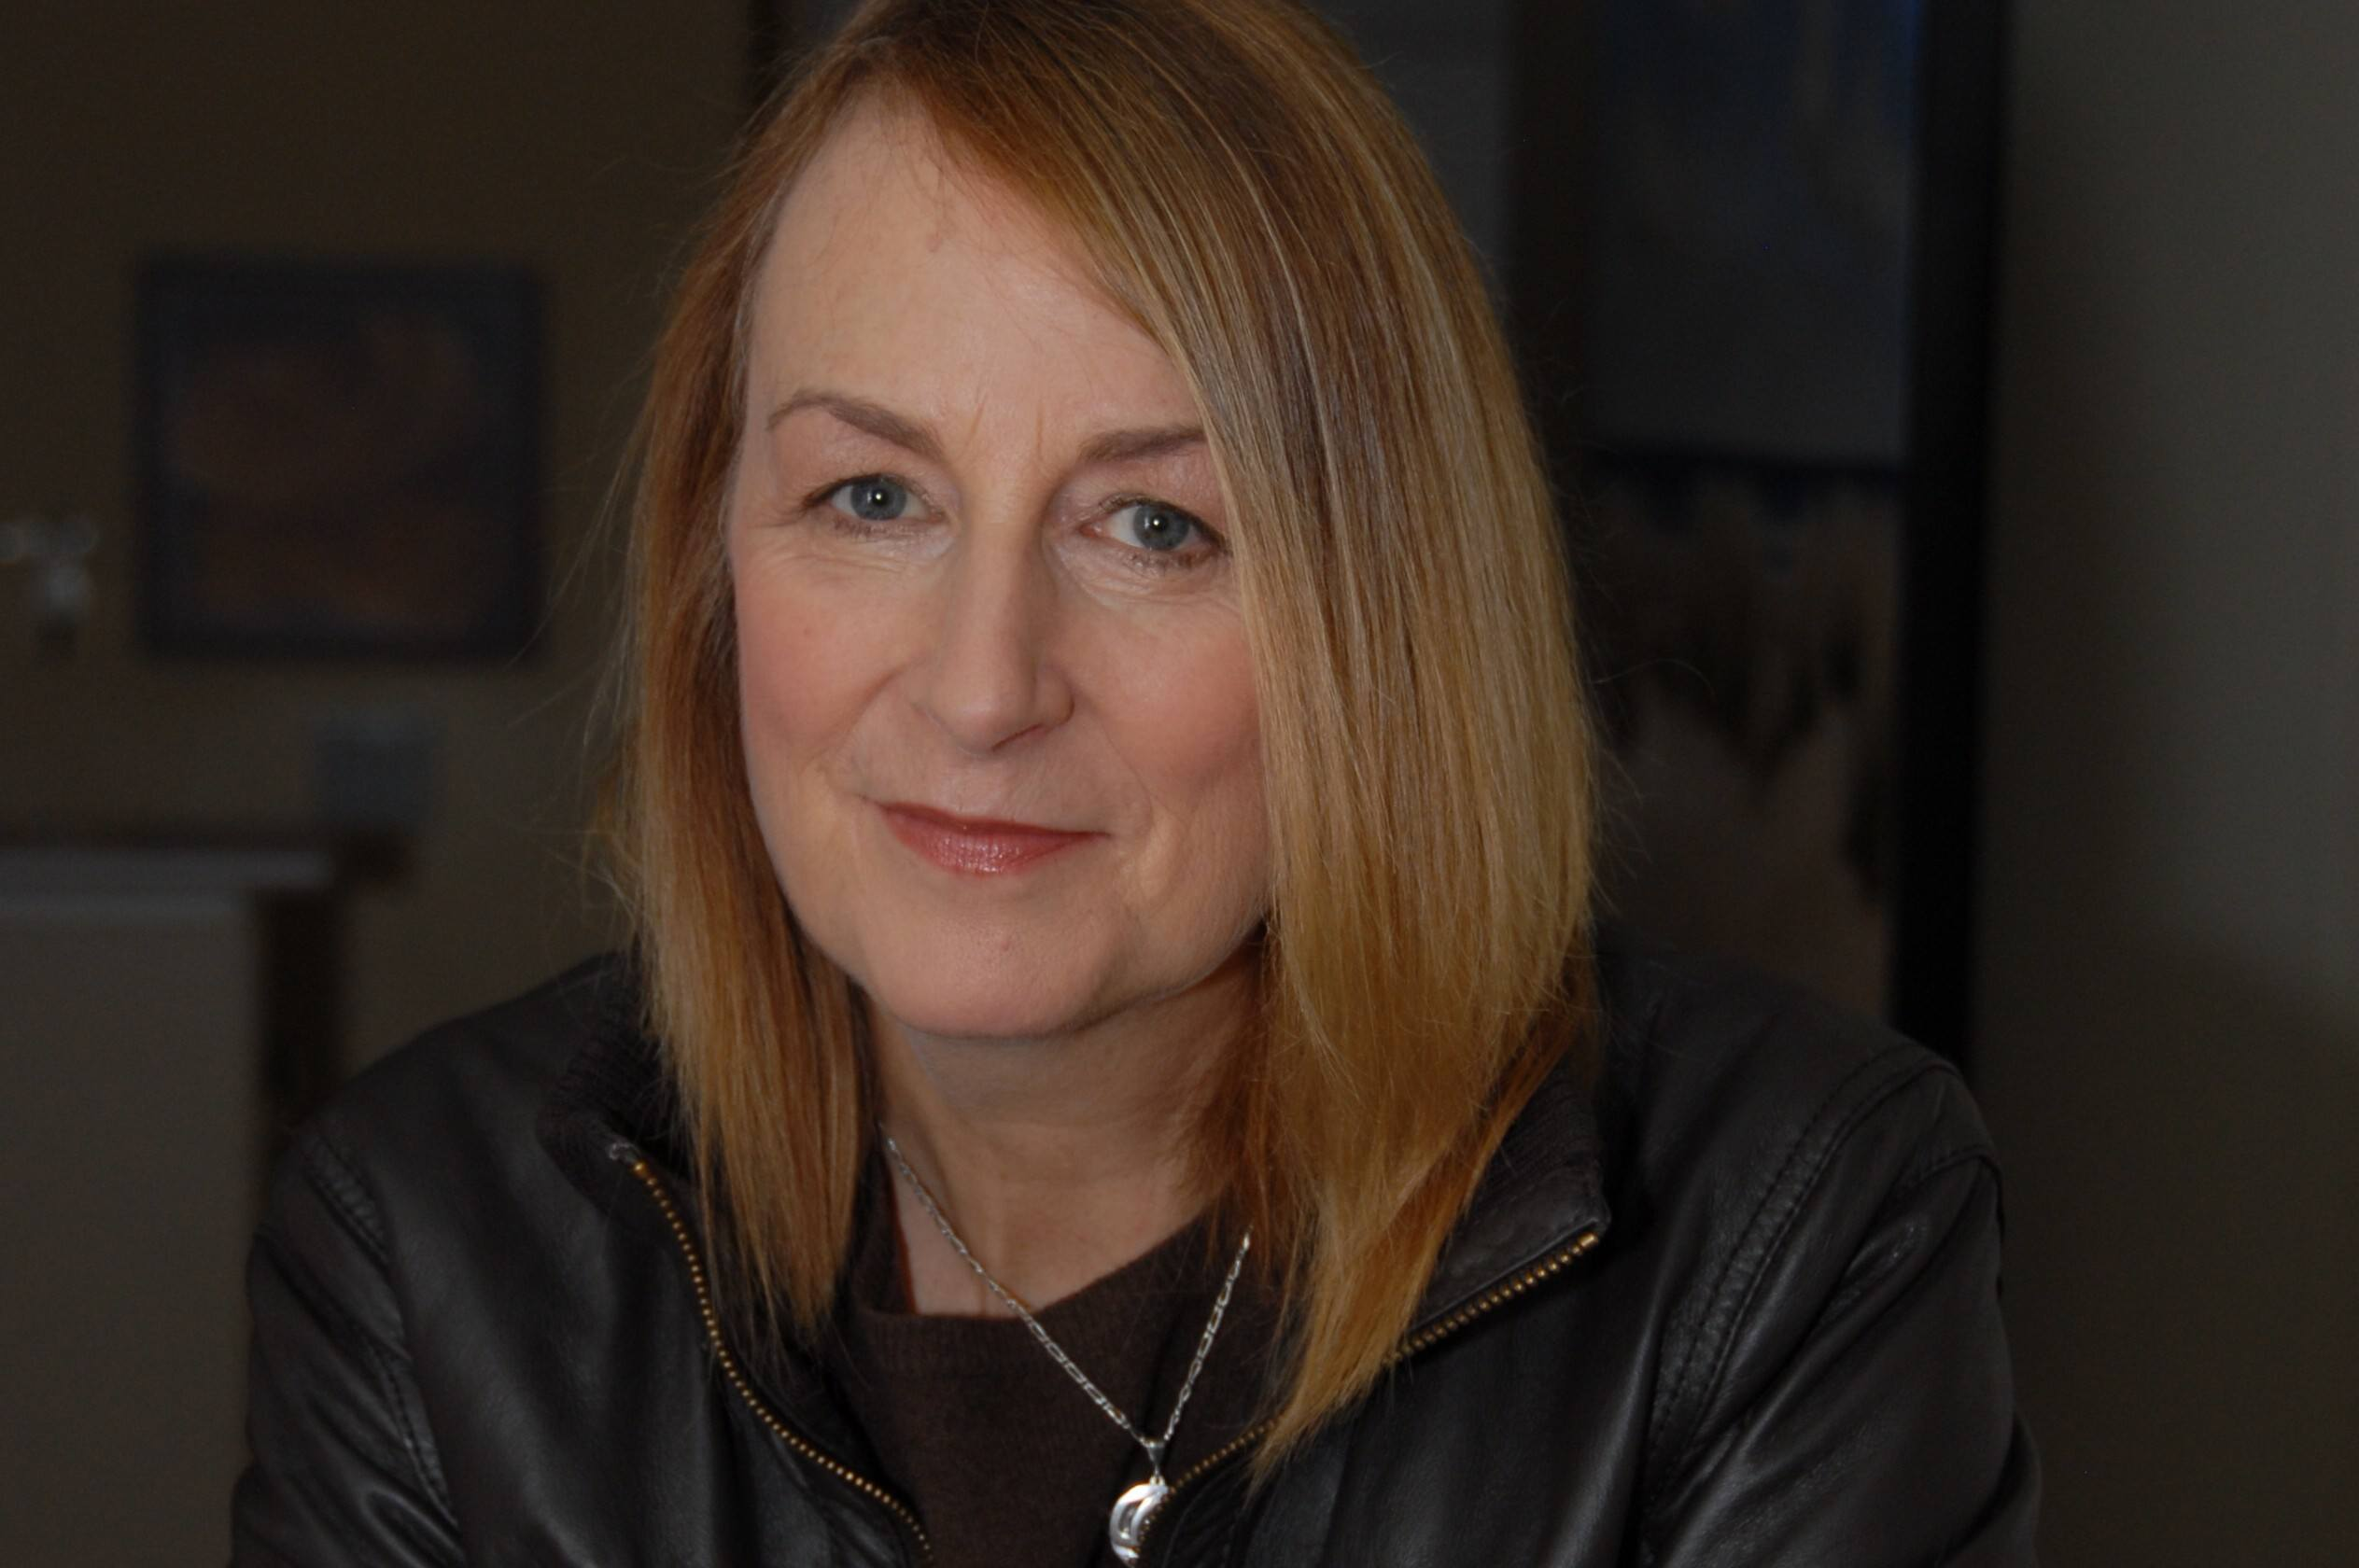 Helen Slinger, of the film Hold Your Fire, about police violence, joins David Peck on Face2Face